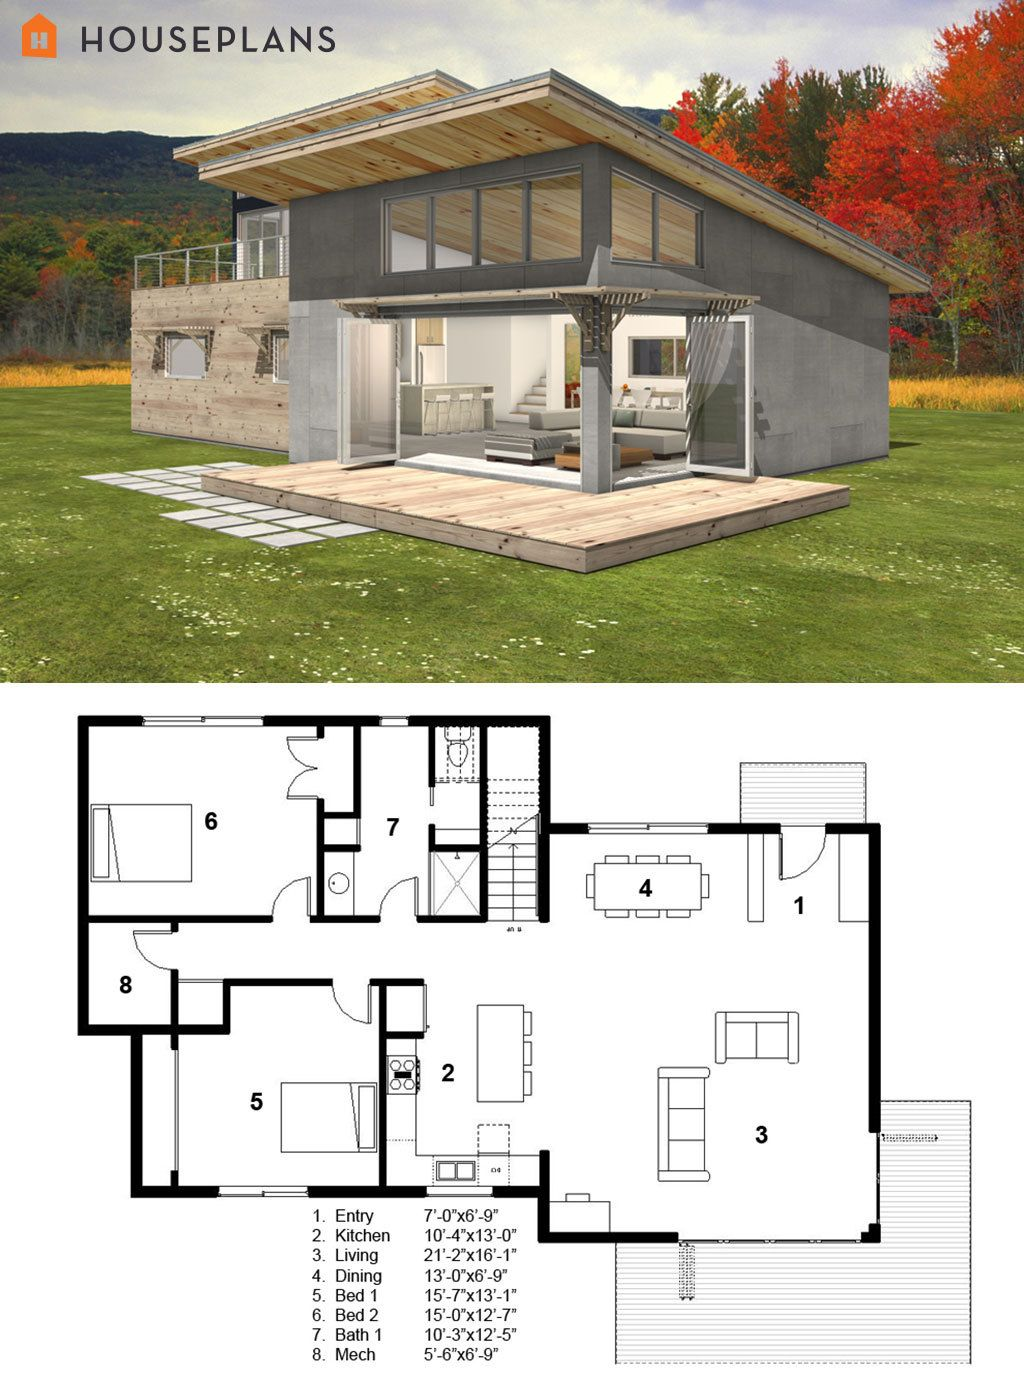 Small modern cabin house plan by freegreen energy for Modern contemporary house plans for sale